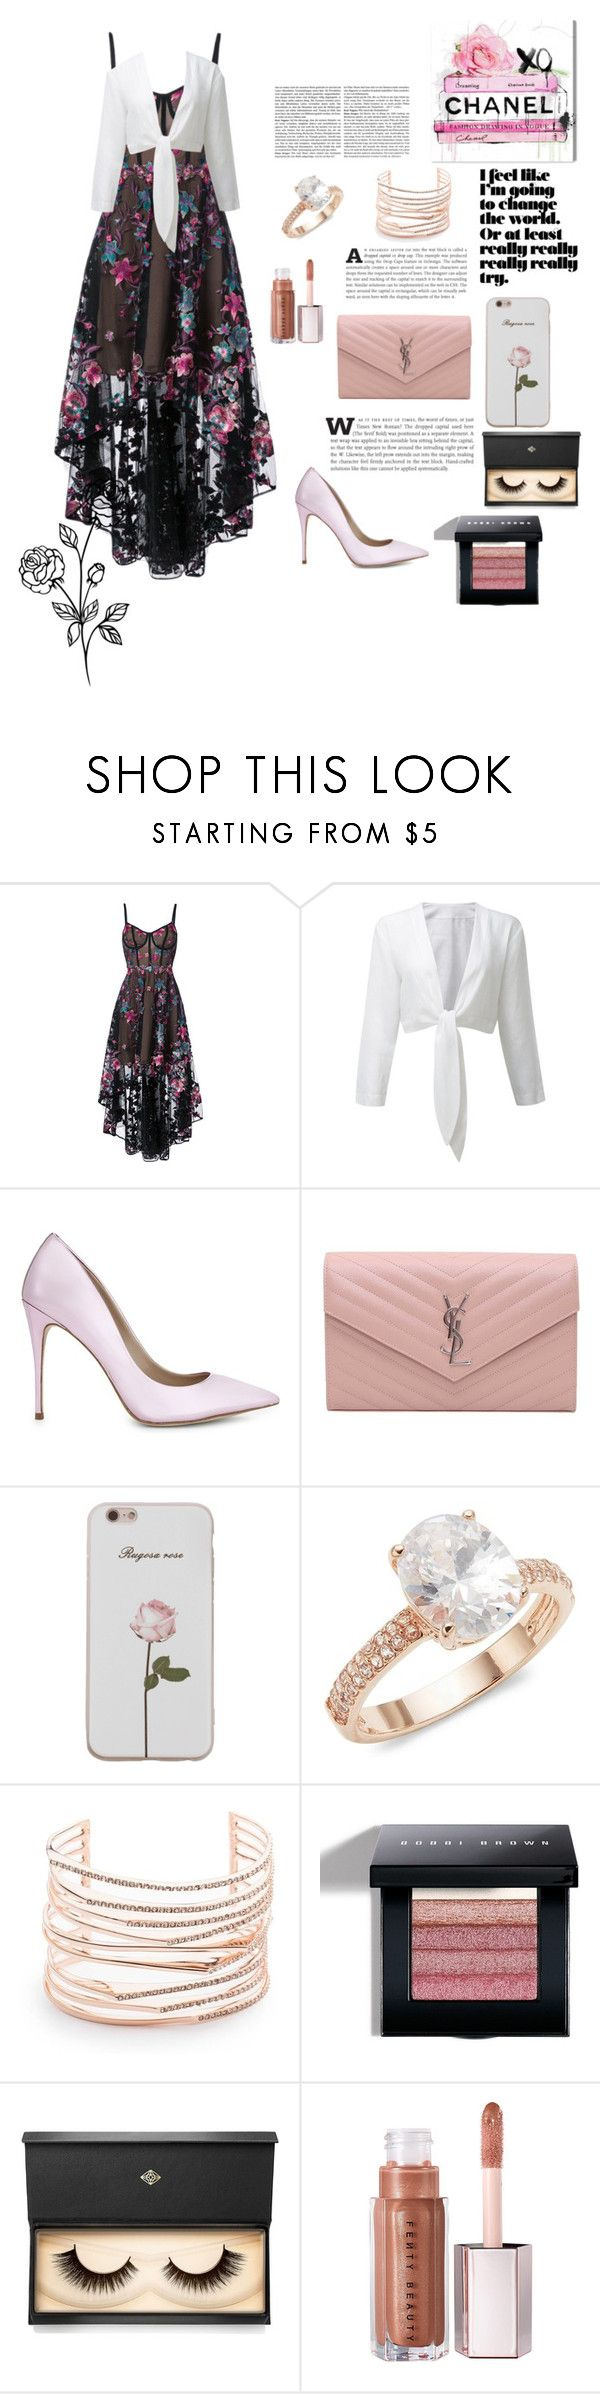 """""""butterfly's"""" by ari-may-16 ❤ liked on Polyvore featuring Notte by Marchesa, ALDO, Yves Saint Laurent, Saks Fifth Avenue, Alexis Bittar, Bobbi Brown Cosmetics and Lash Star Beauty"""